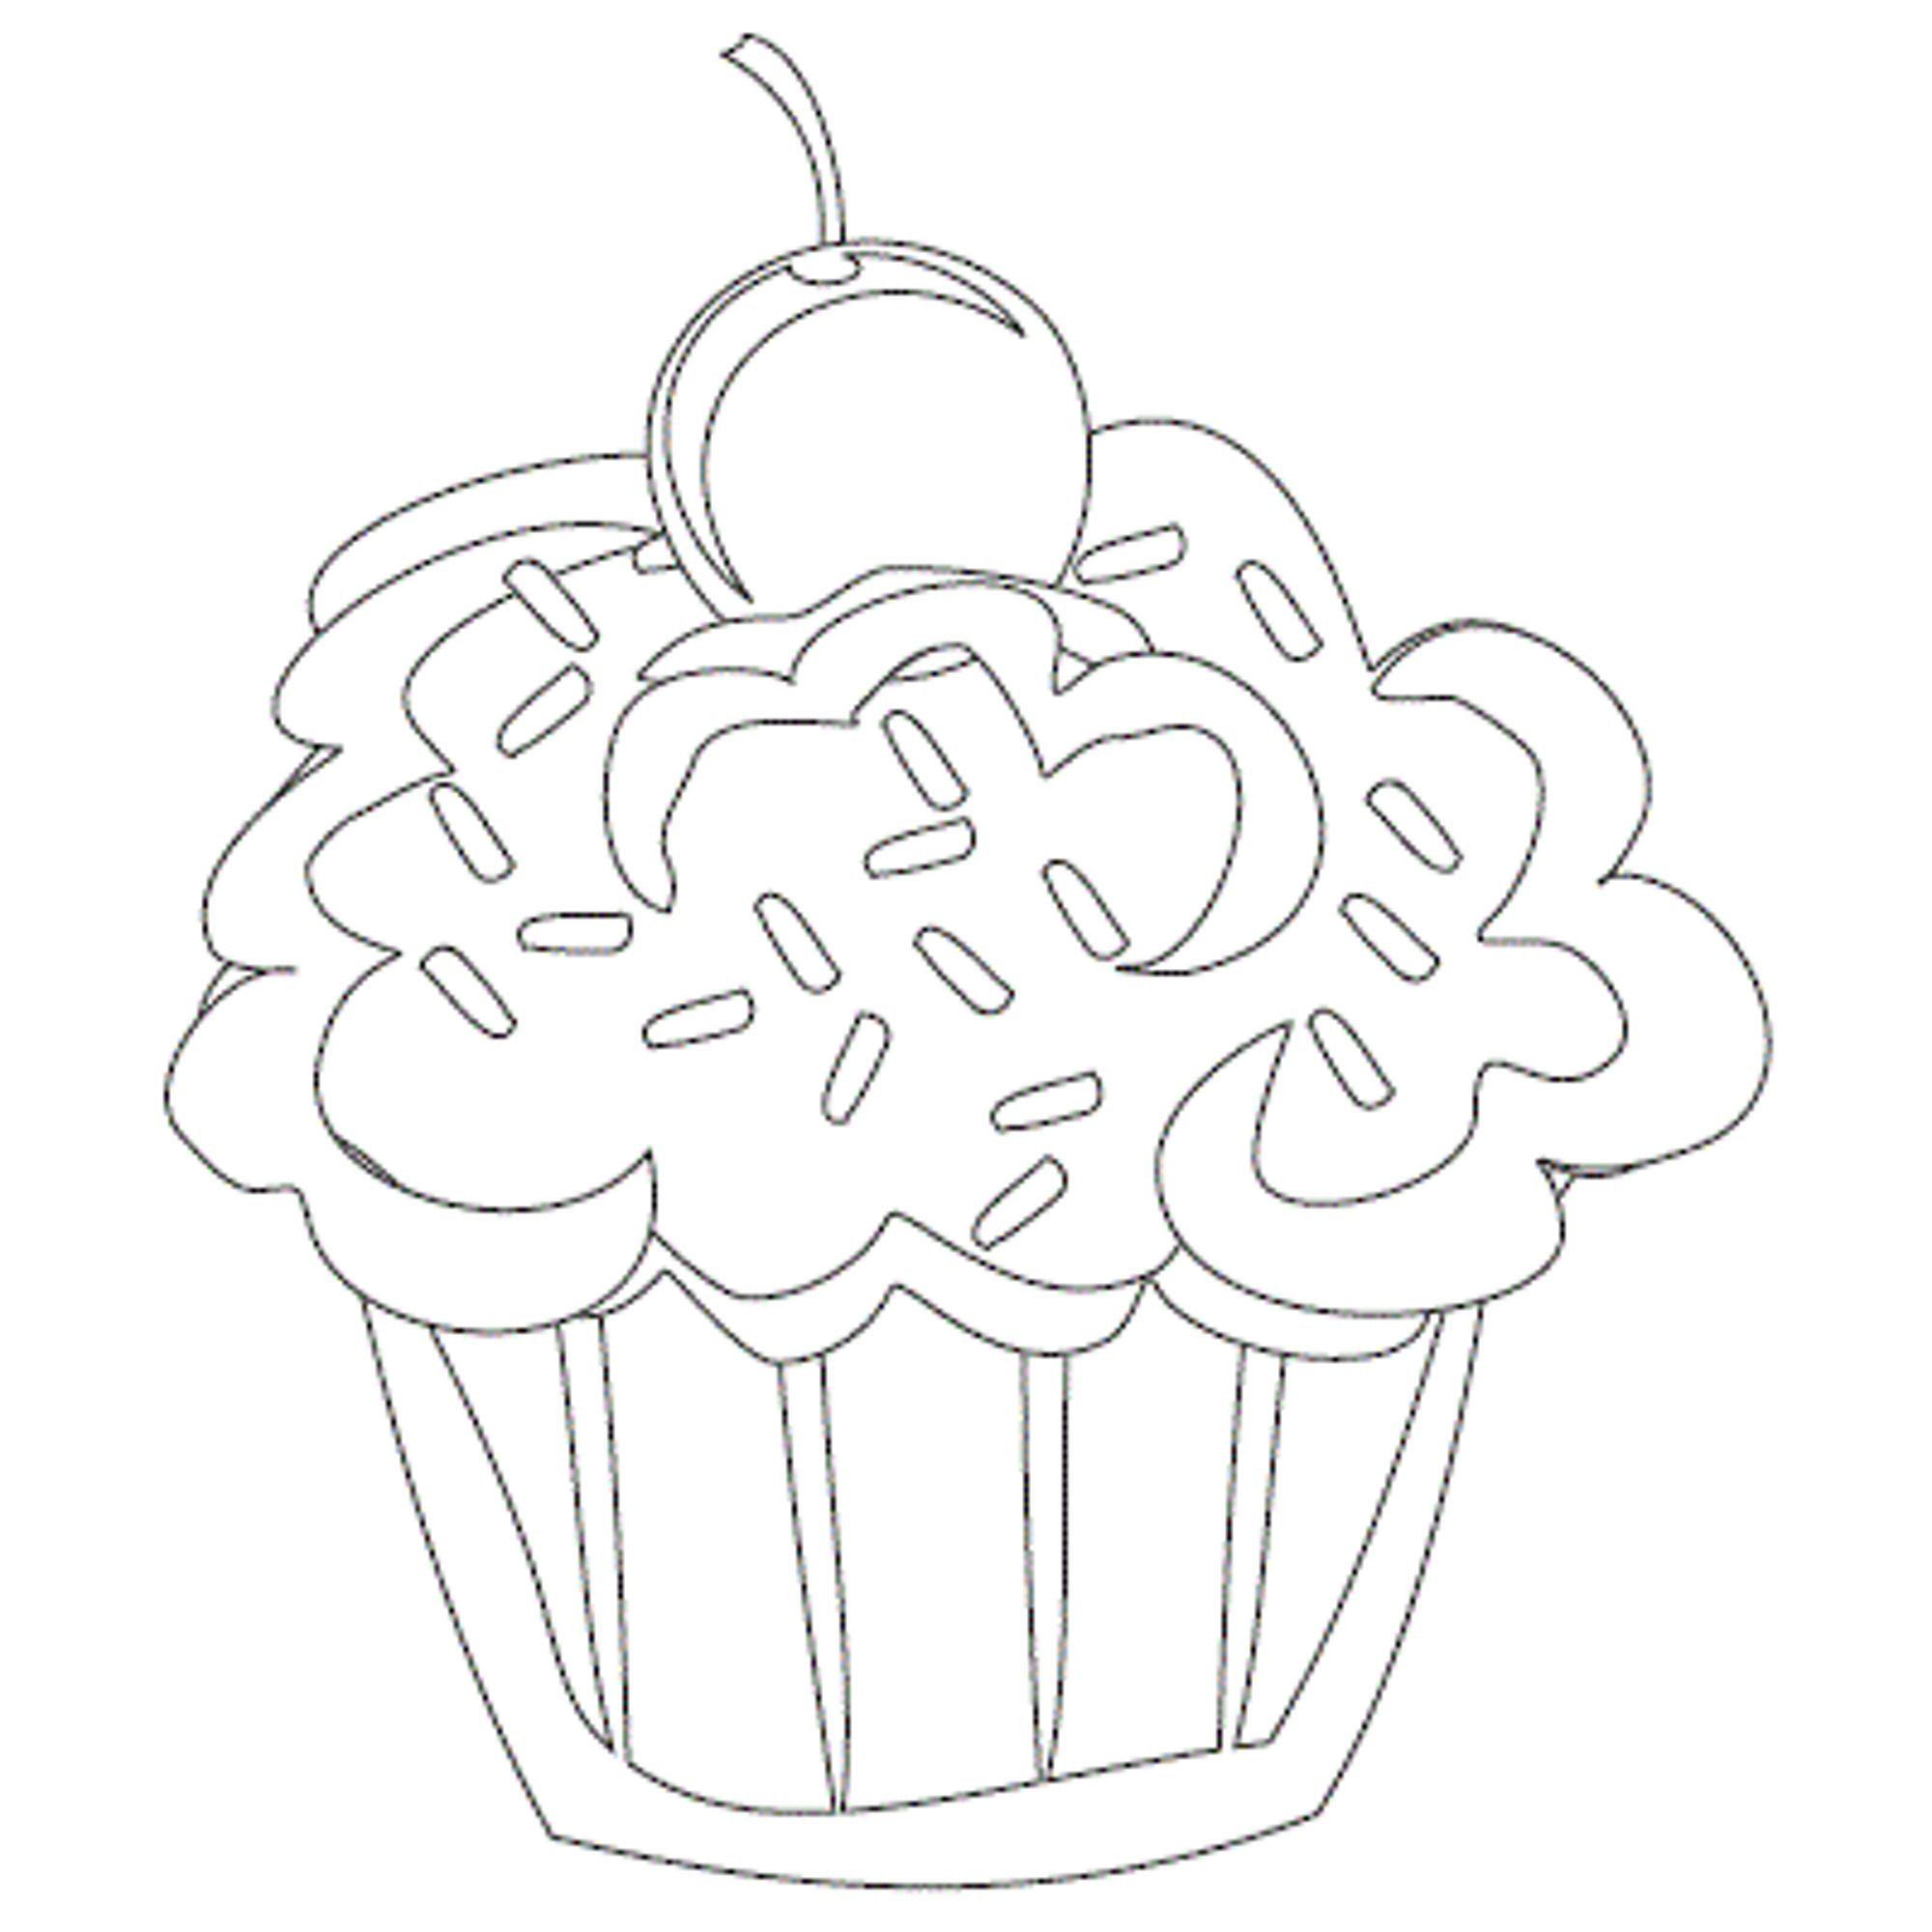 cute cupcakes coloring page : cupcake coloring pages | Bakery ...